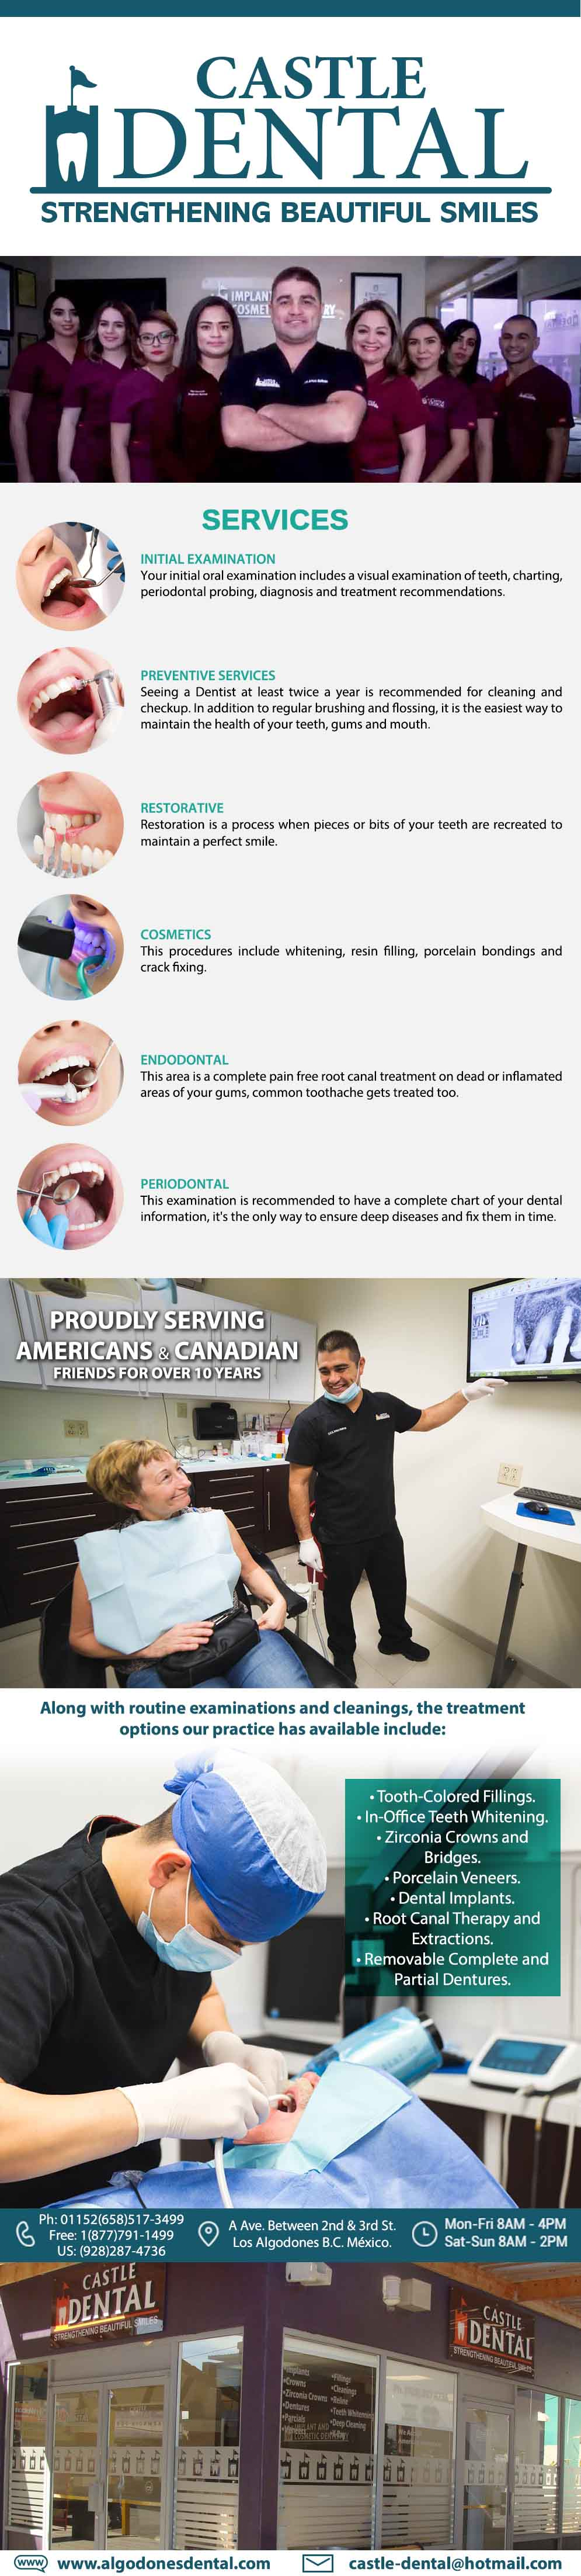 CASTLE DENTAL DDS Arturo Beltran in Algodones  in Algodones  CASTLE DENTAL Dr. Arturo Beltran DDS.  Proudly Serving AMERICAN & CANADIAN friends for over 10 years. STRENGTHENING BEAUTIFUL SMILES!! dentistas dentist dentista medico medicina dental care dental clinic dr doctores dental implants tooth colored filling zirconia crown bridges porcelain veneers root canal therapy  and extractions removable complete and partial dentures periodontics endodontics cosmetic